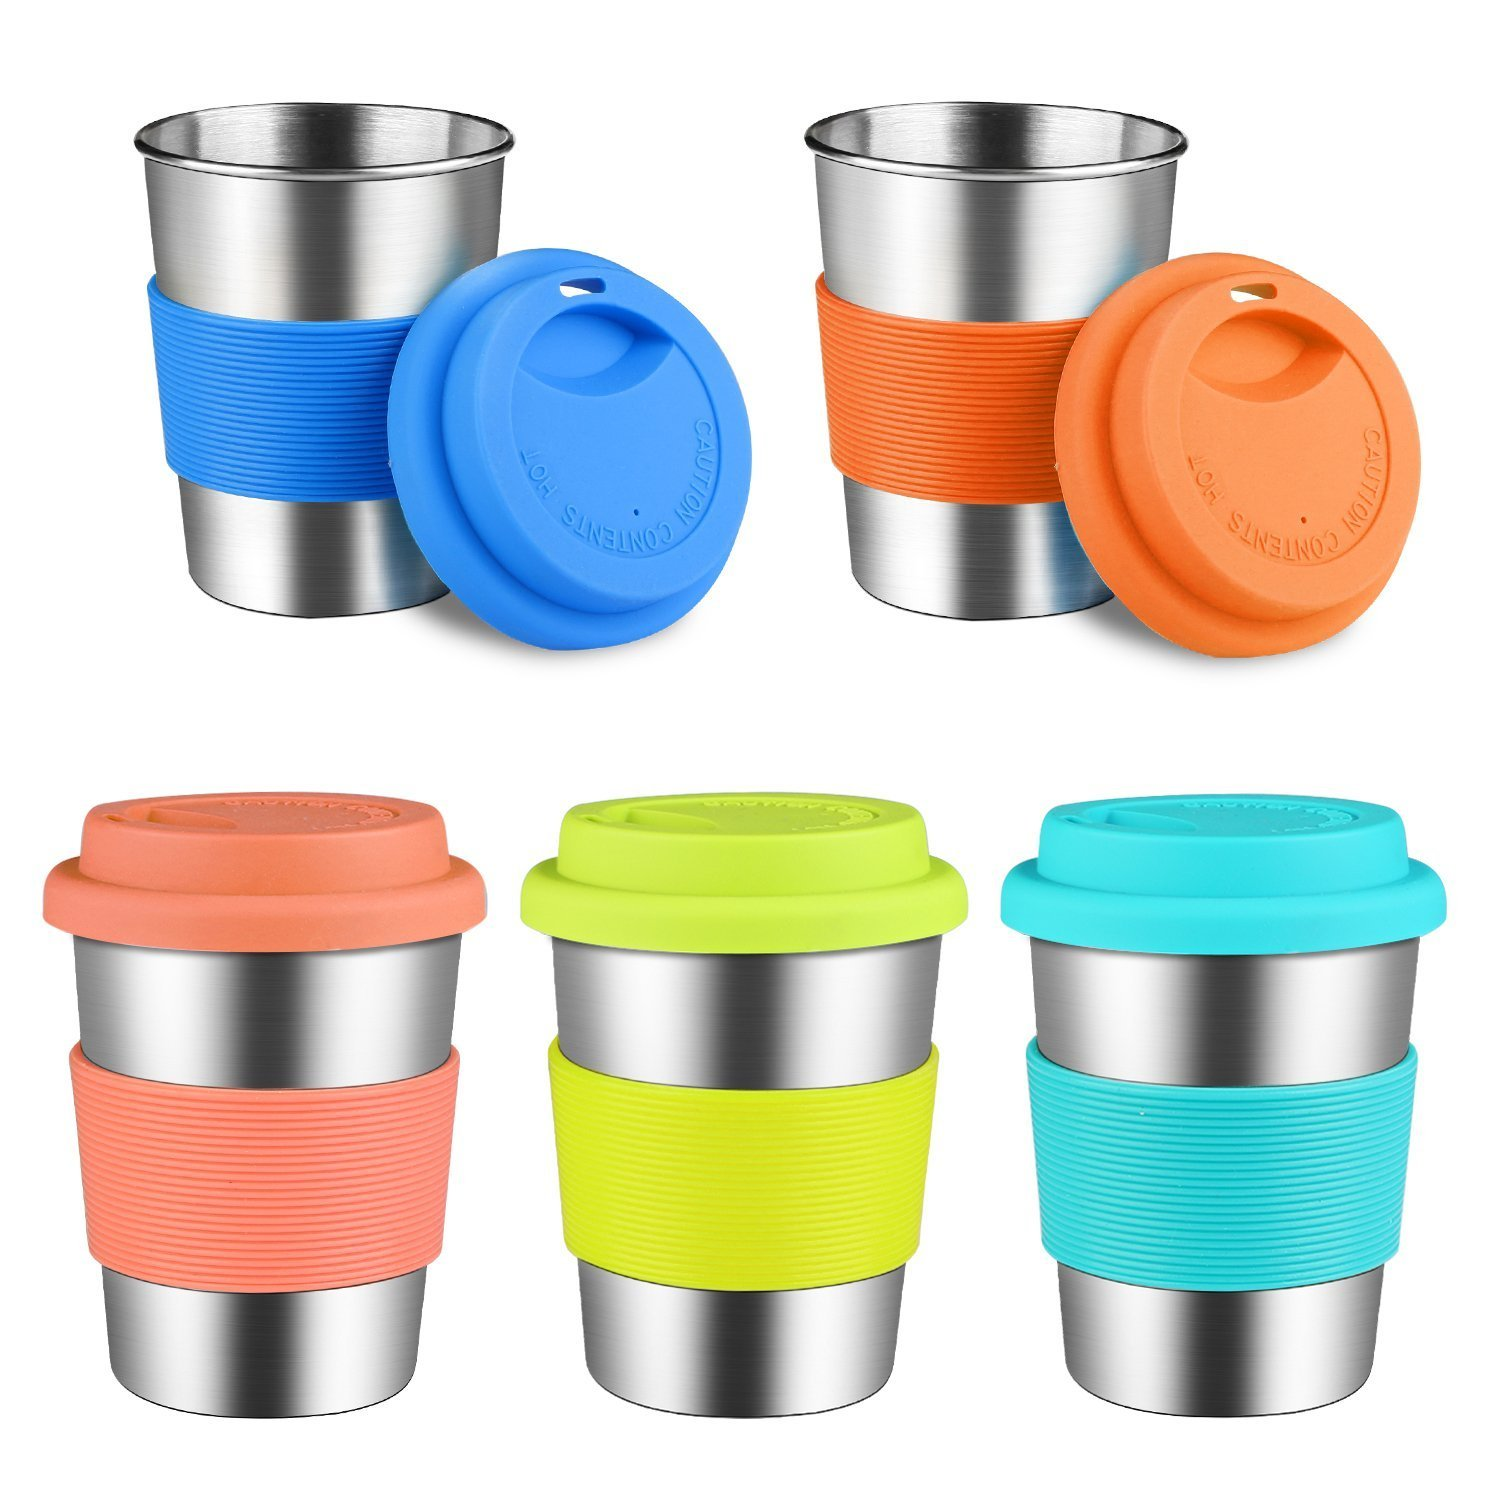 Kids Stainless Steel Cups with Lid & Silicone Sleeves, Kereda 230ml/8oz Food-grade Stackable Metal Drinking Tumbler Lead/BPA Free Mug for Children Camping, Travel, Hiking, Outdoor & Everyday Use, Set of 5